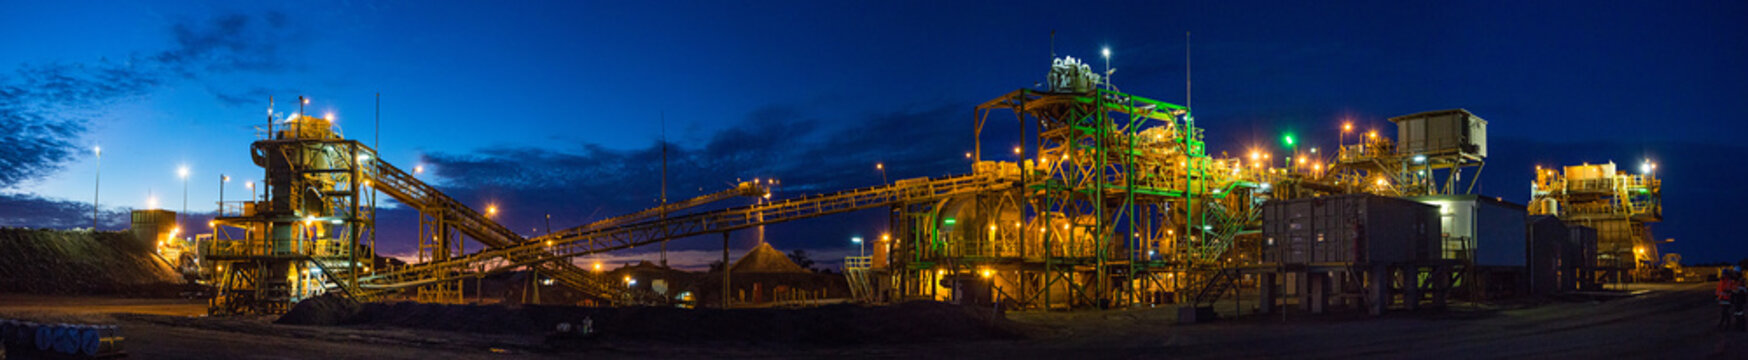 Night view of a copper mine head in NSW Australia